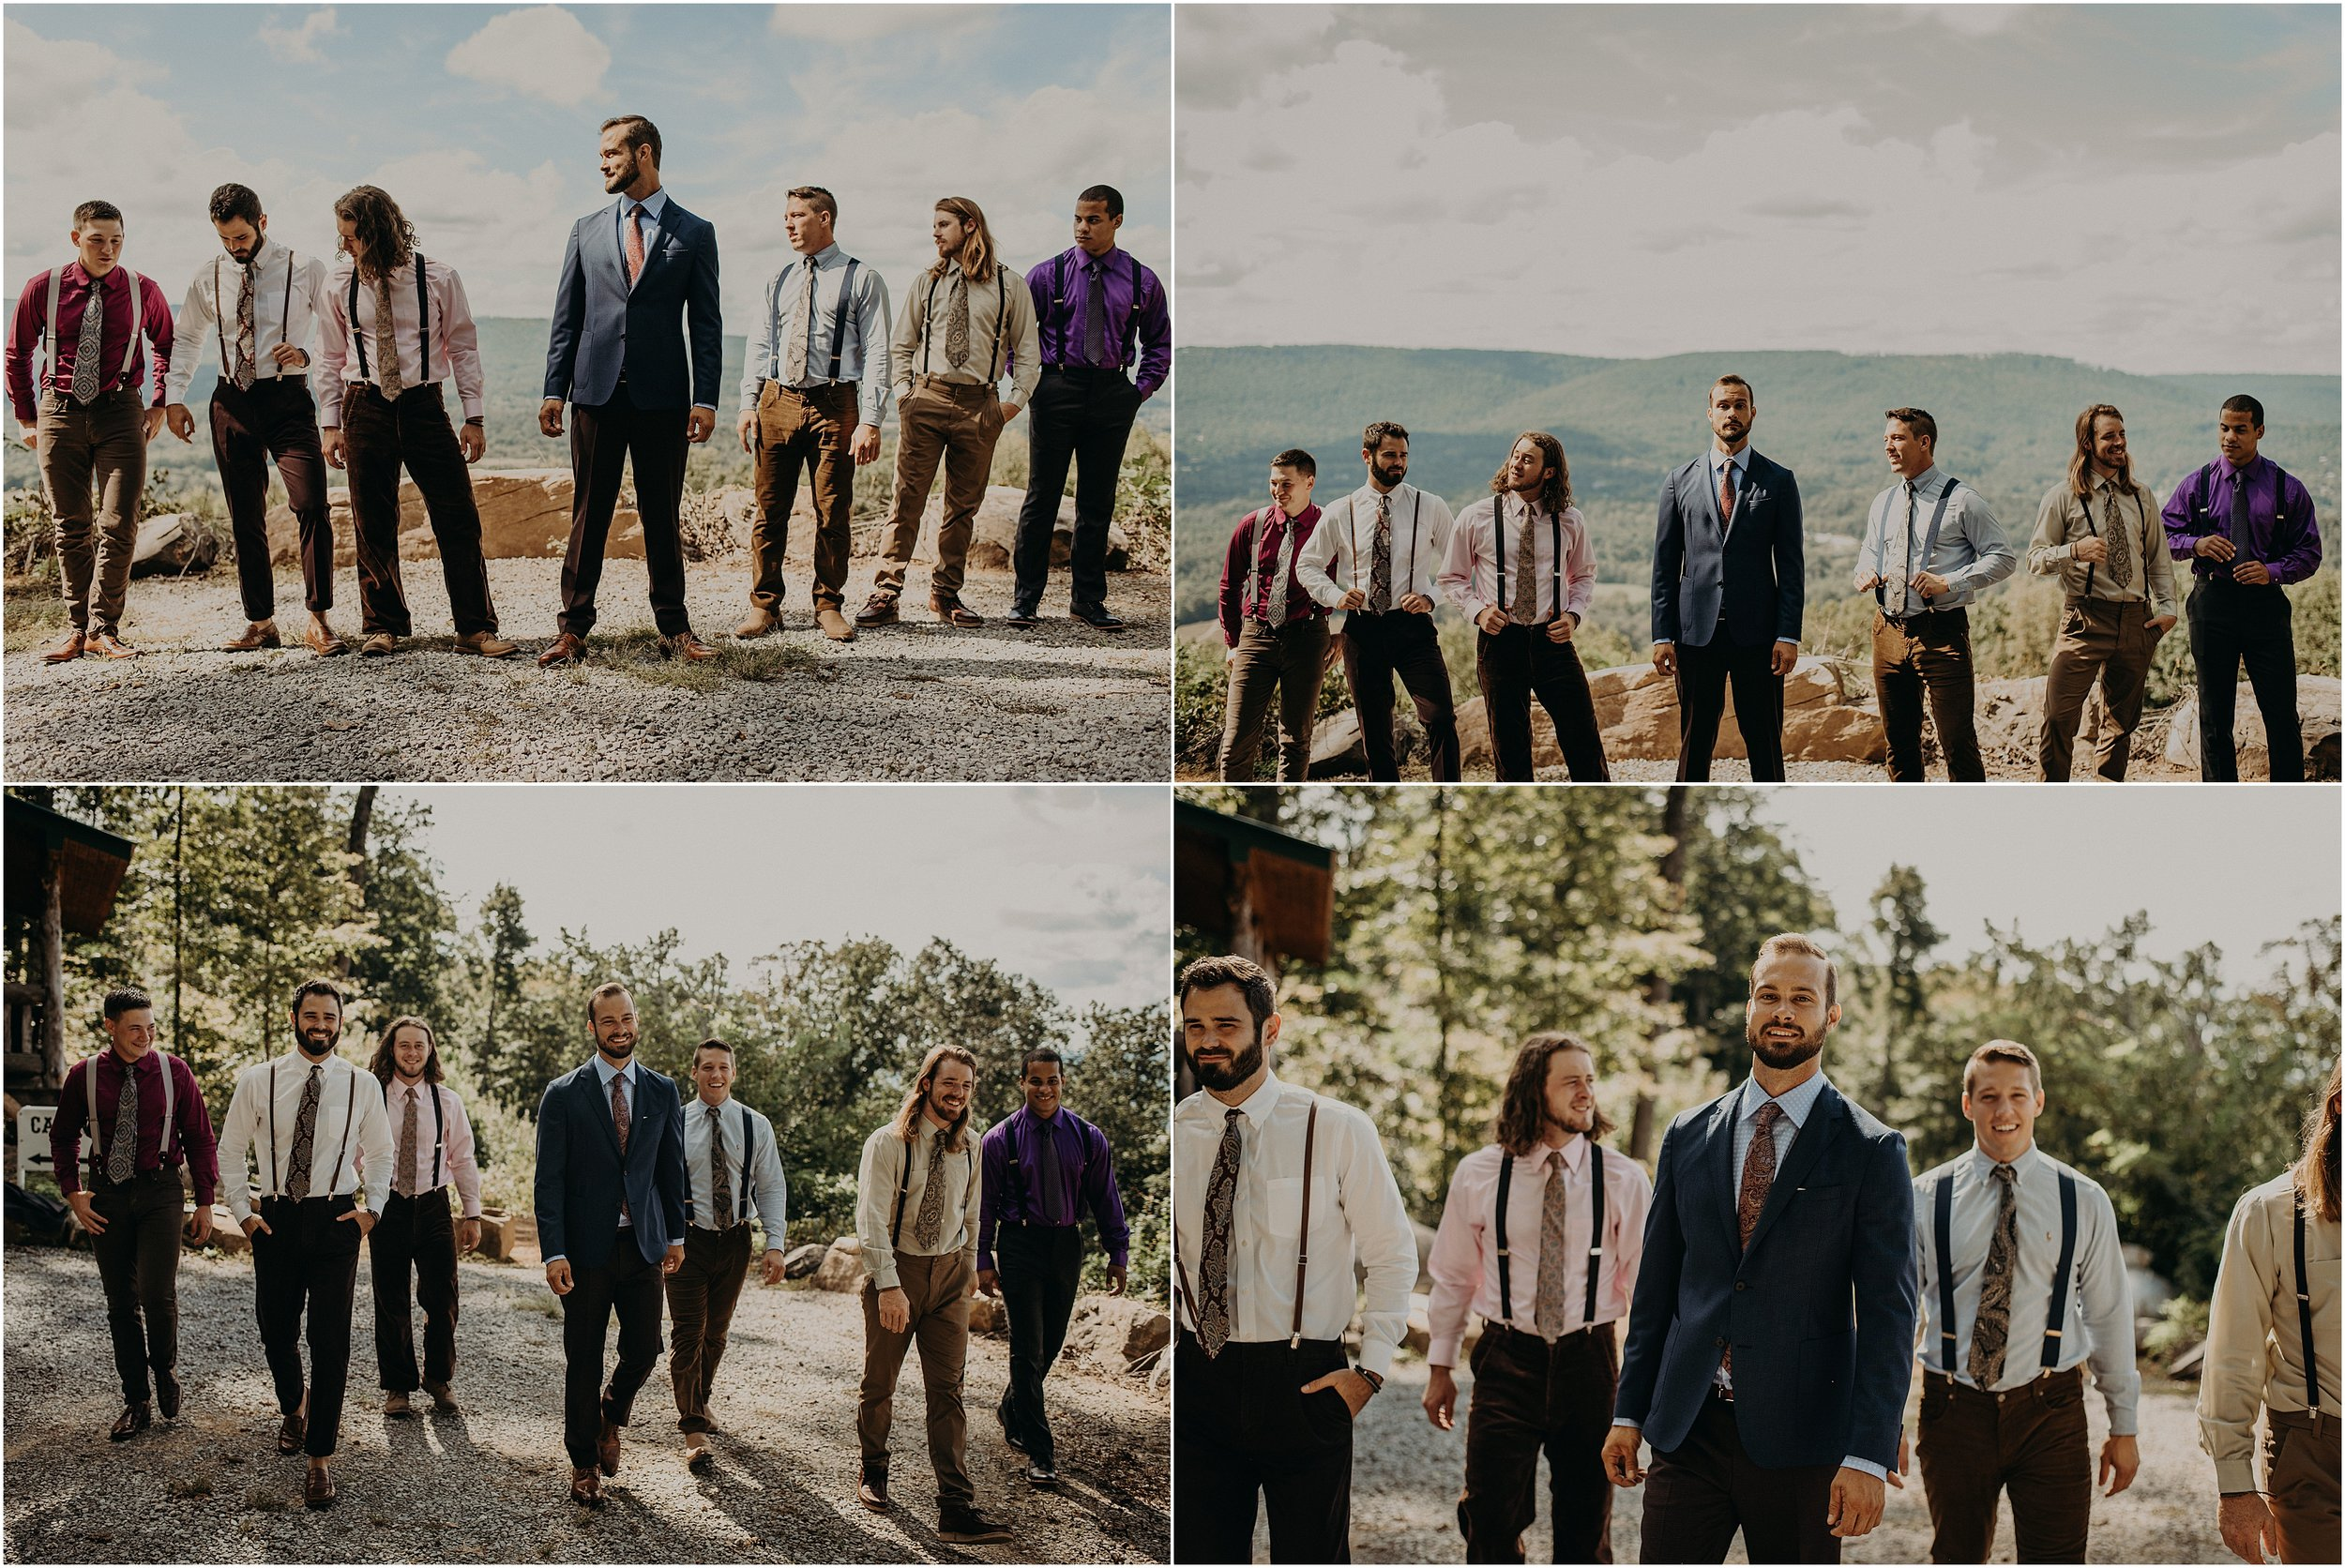 The groom and his groomsmen pose on the side of Lookout Mountain, Tennessee